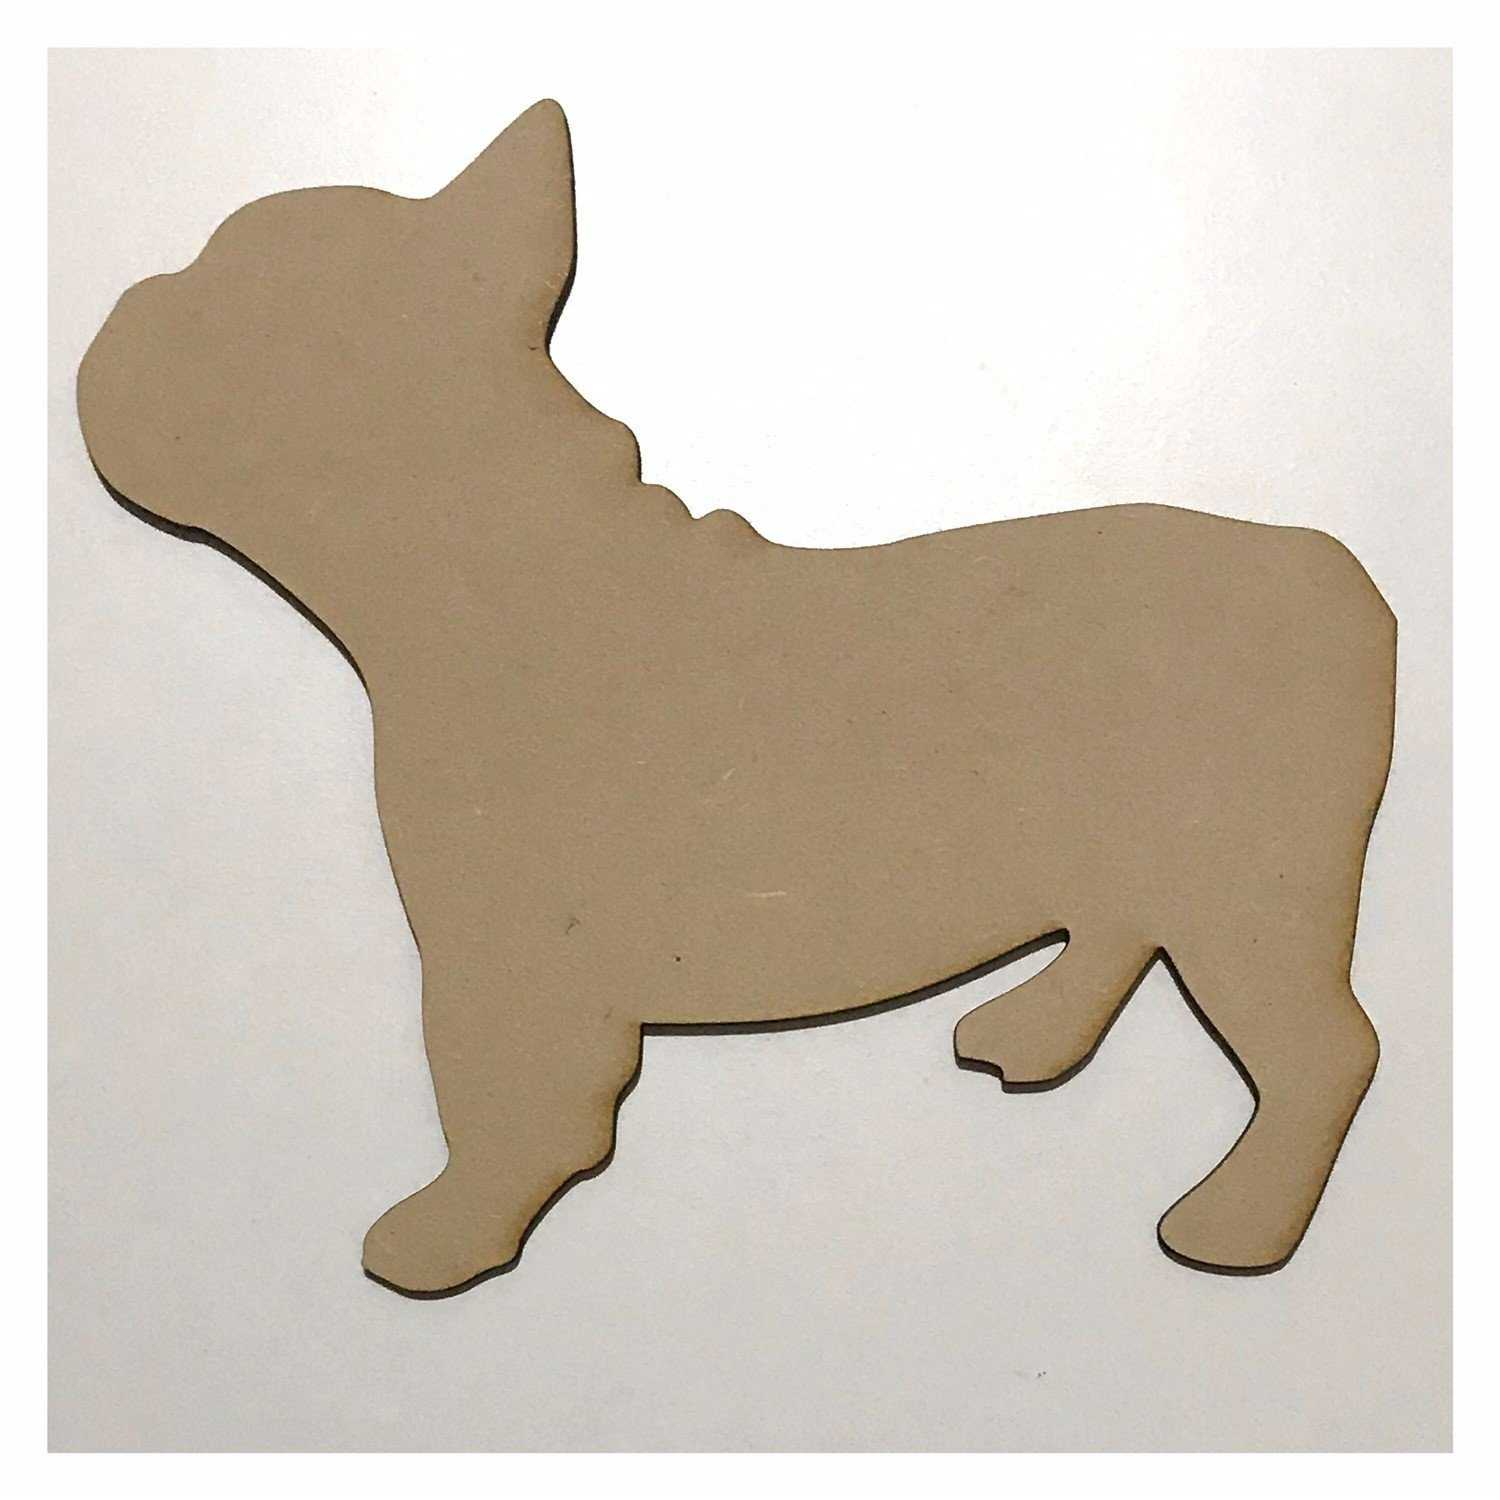 French Bull Frenchie Dog DIY Raw MDF Timber Other Home Décor The Renmy Store